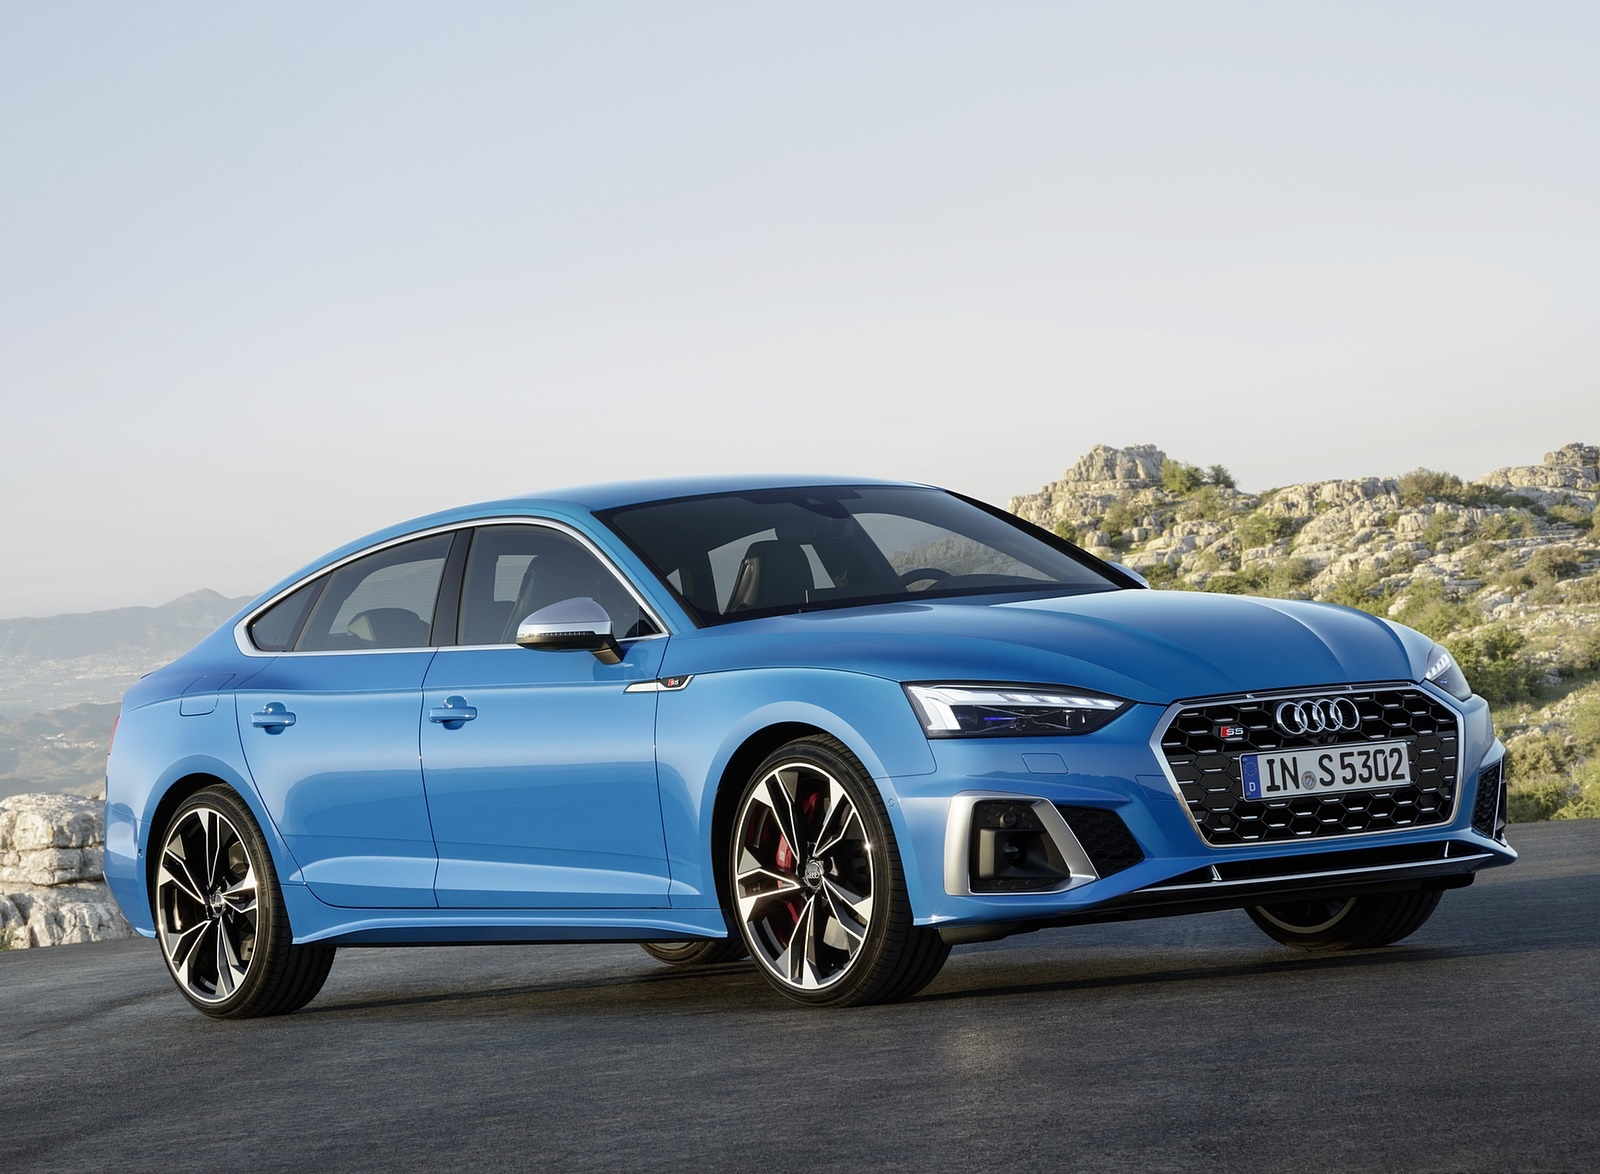 2020 Audi S5 Sportback TDI (Color: Turbo Blue) Front Three-Quarter Wallpapers (8)